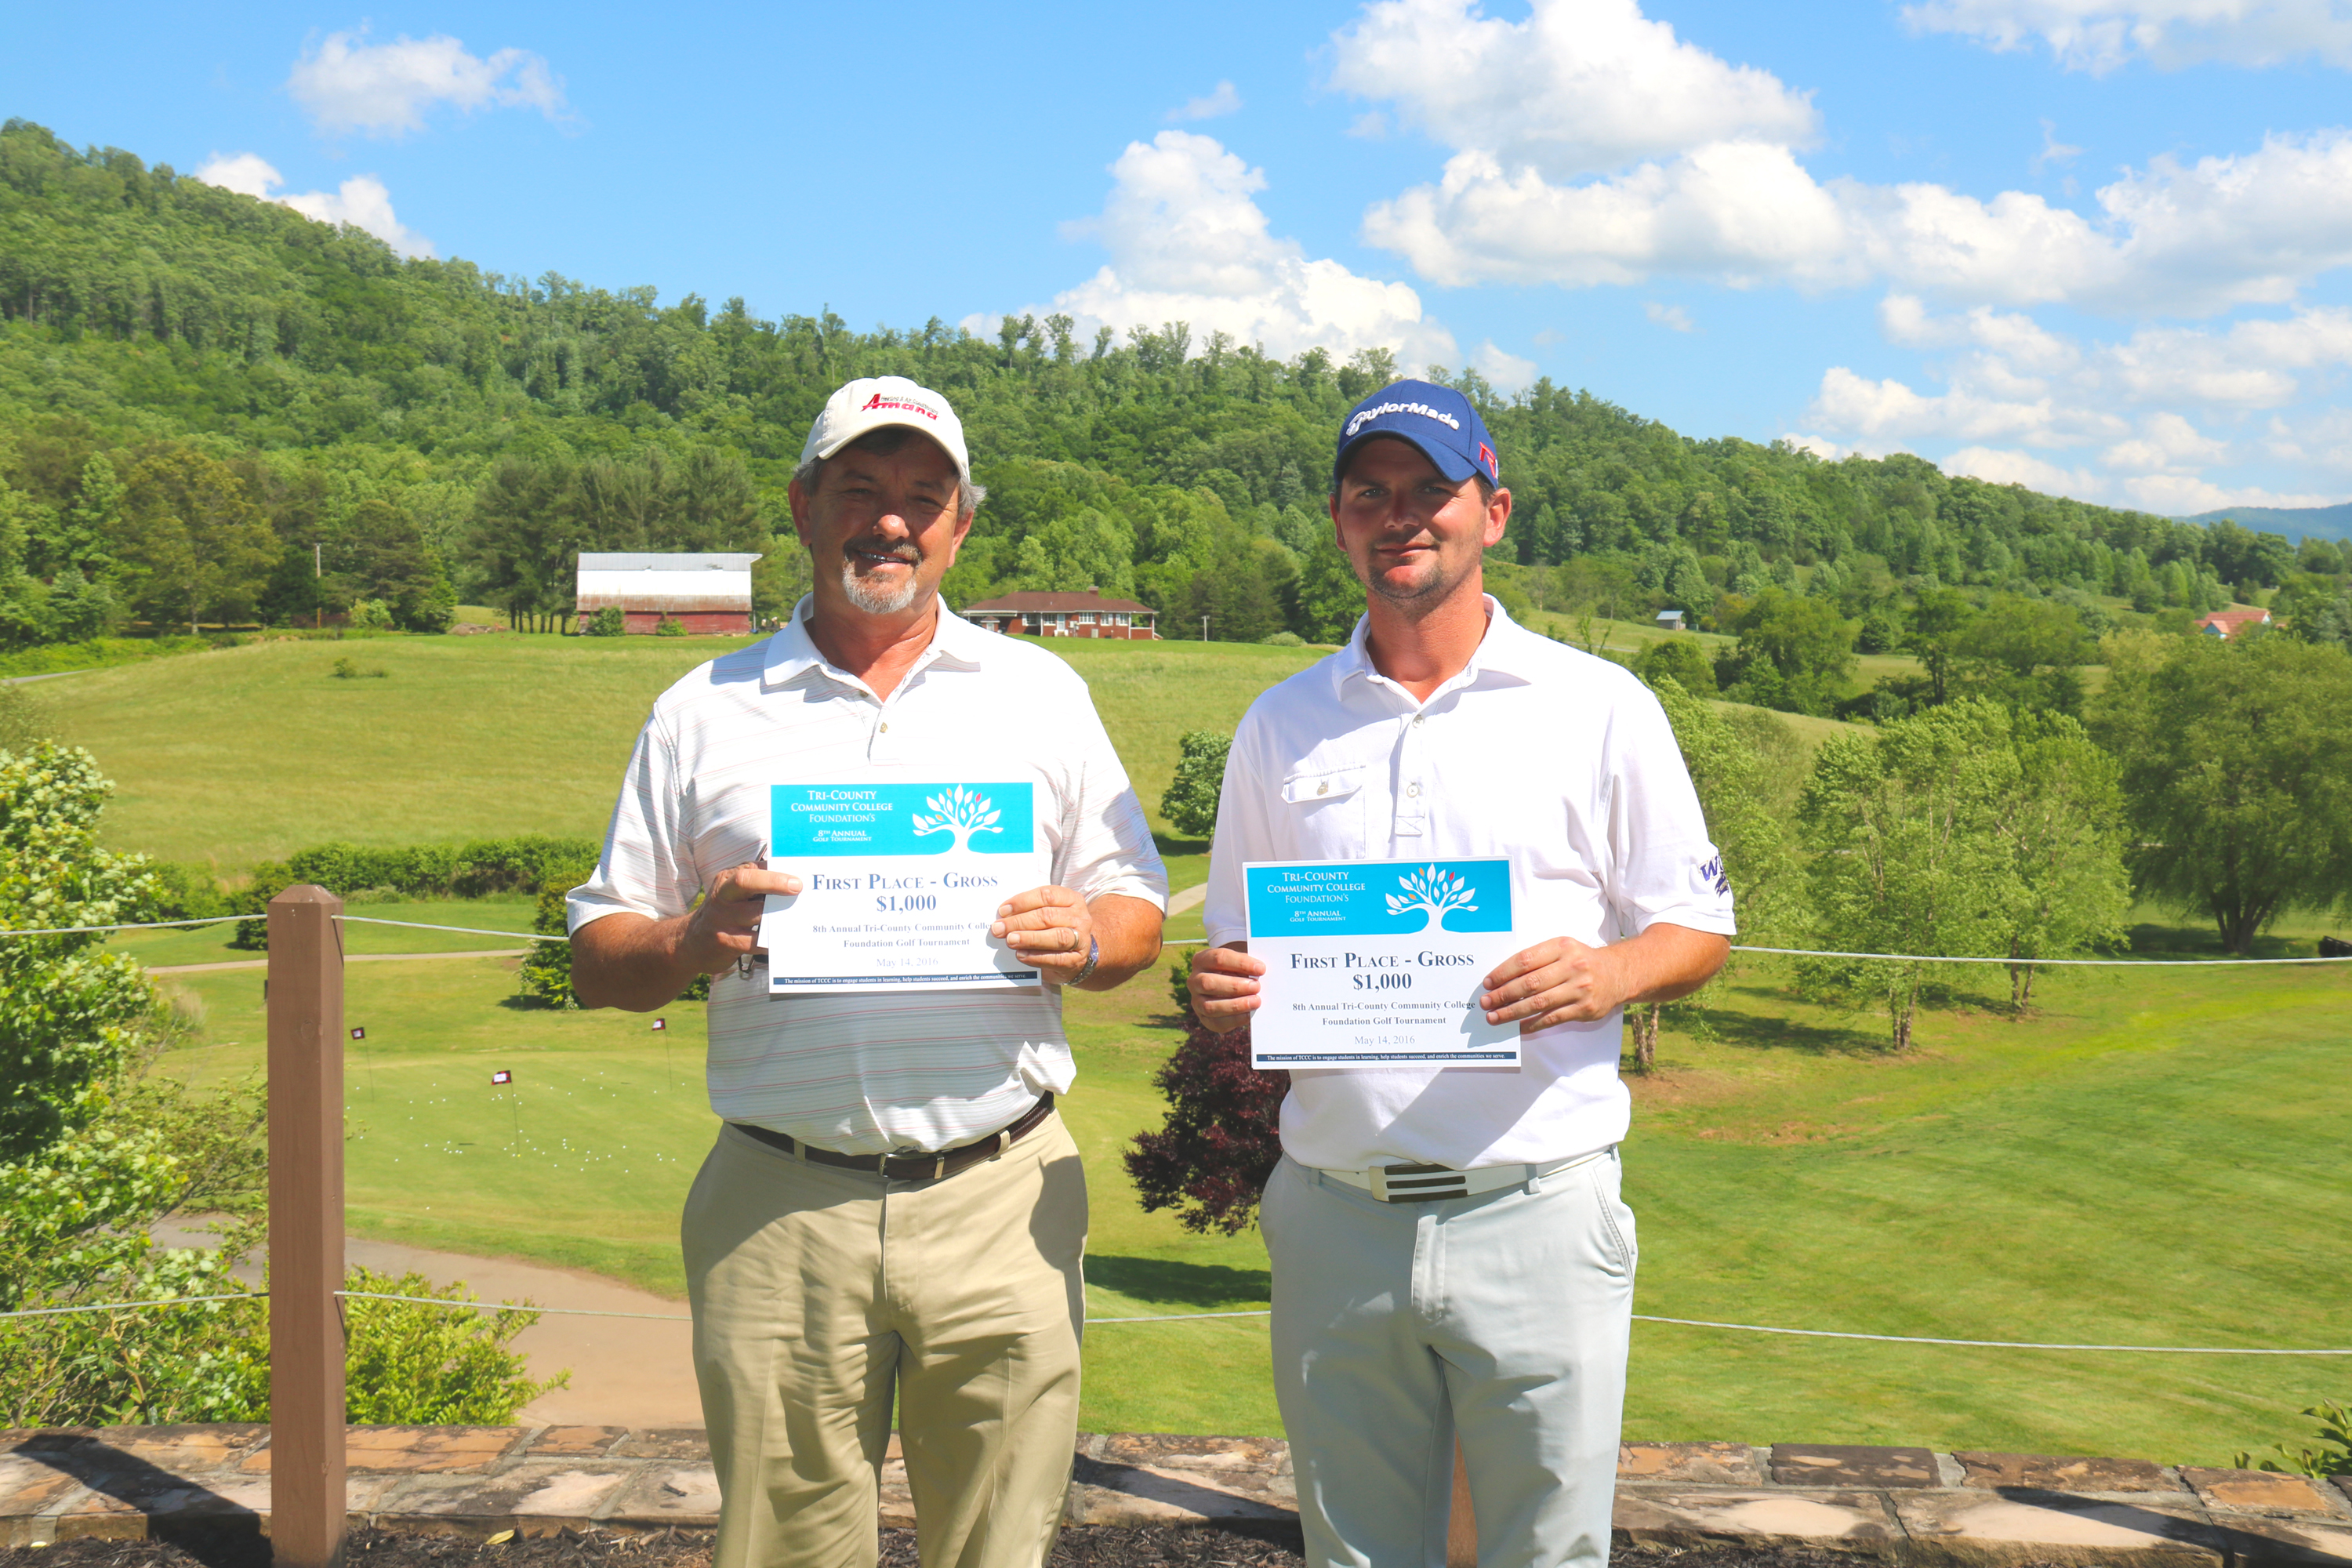 Rick Curtis and Matt Cook, winners of the $1,000 first place gross prize pose with their winnings at the TCCC Foundation's 8th Annual Golf Tournament at The Ridges Country Club in Hayesville on May 14.